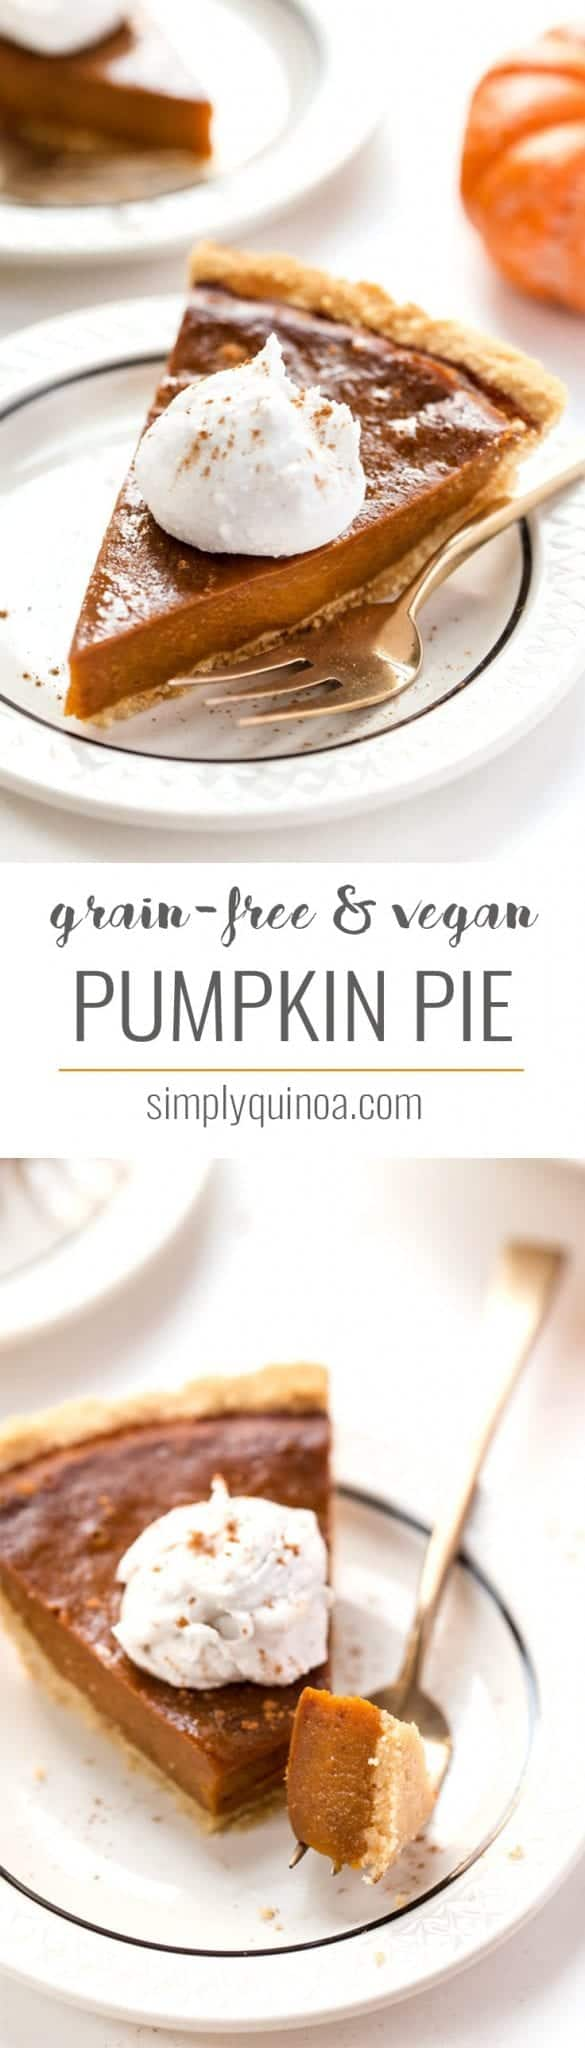 Grain-Free & Vegan Pumpkin Pie 😍 made entirely in the food processor, with an almond flour pie crust and topped with coconut whip!